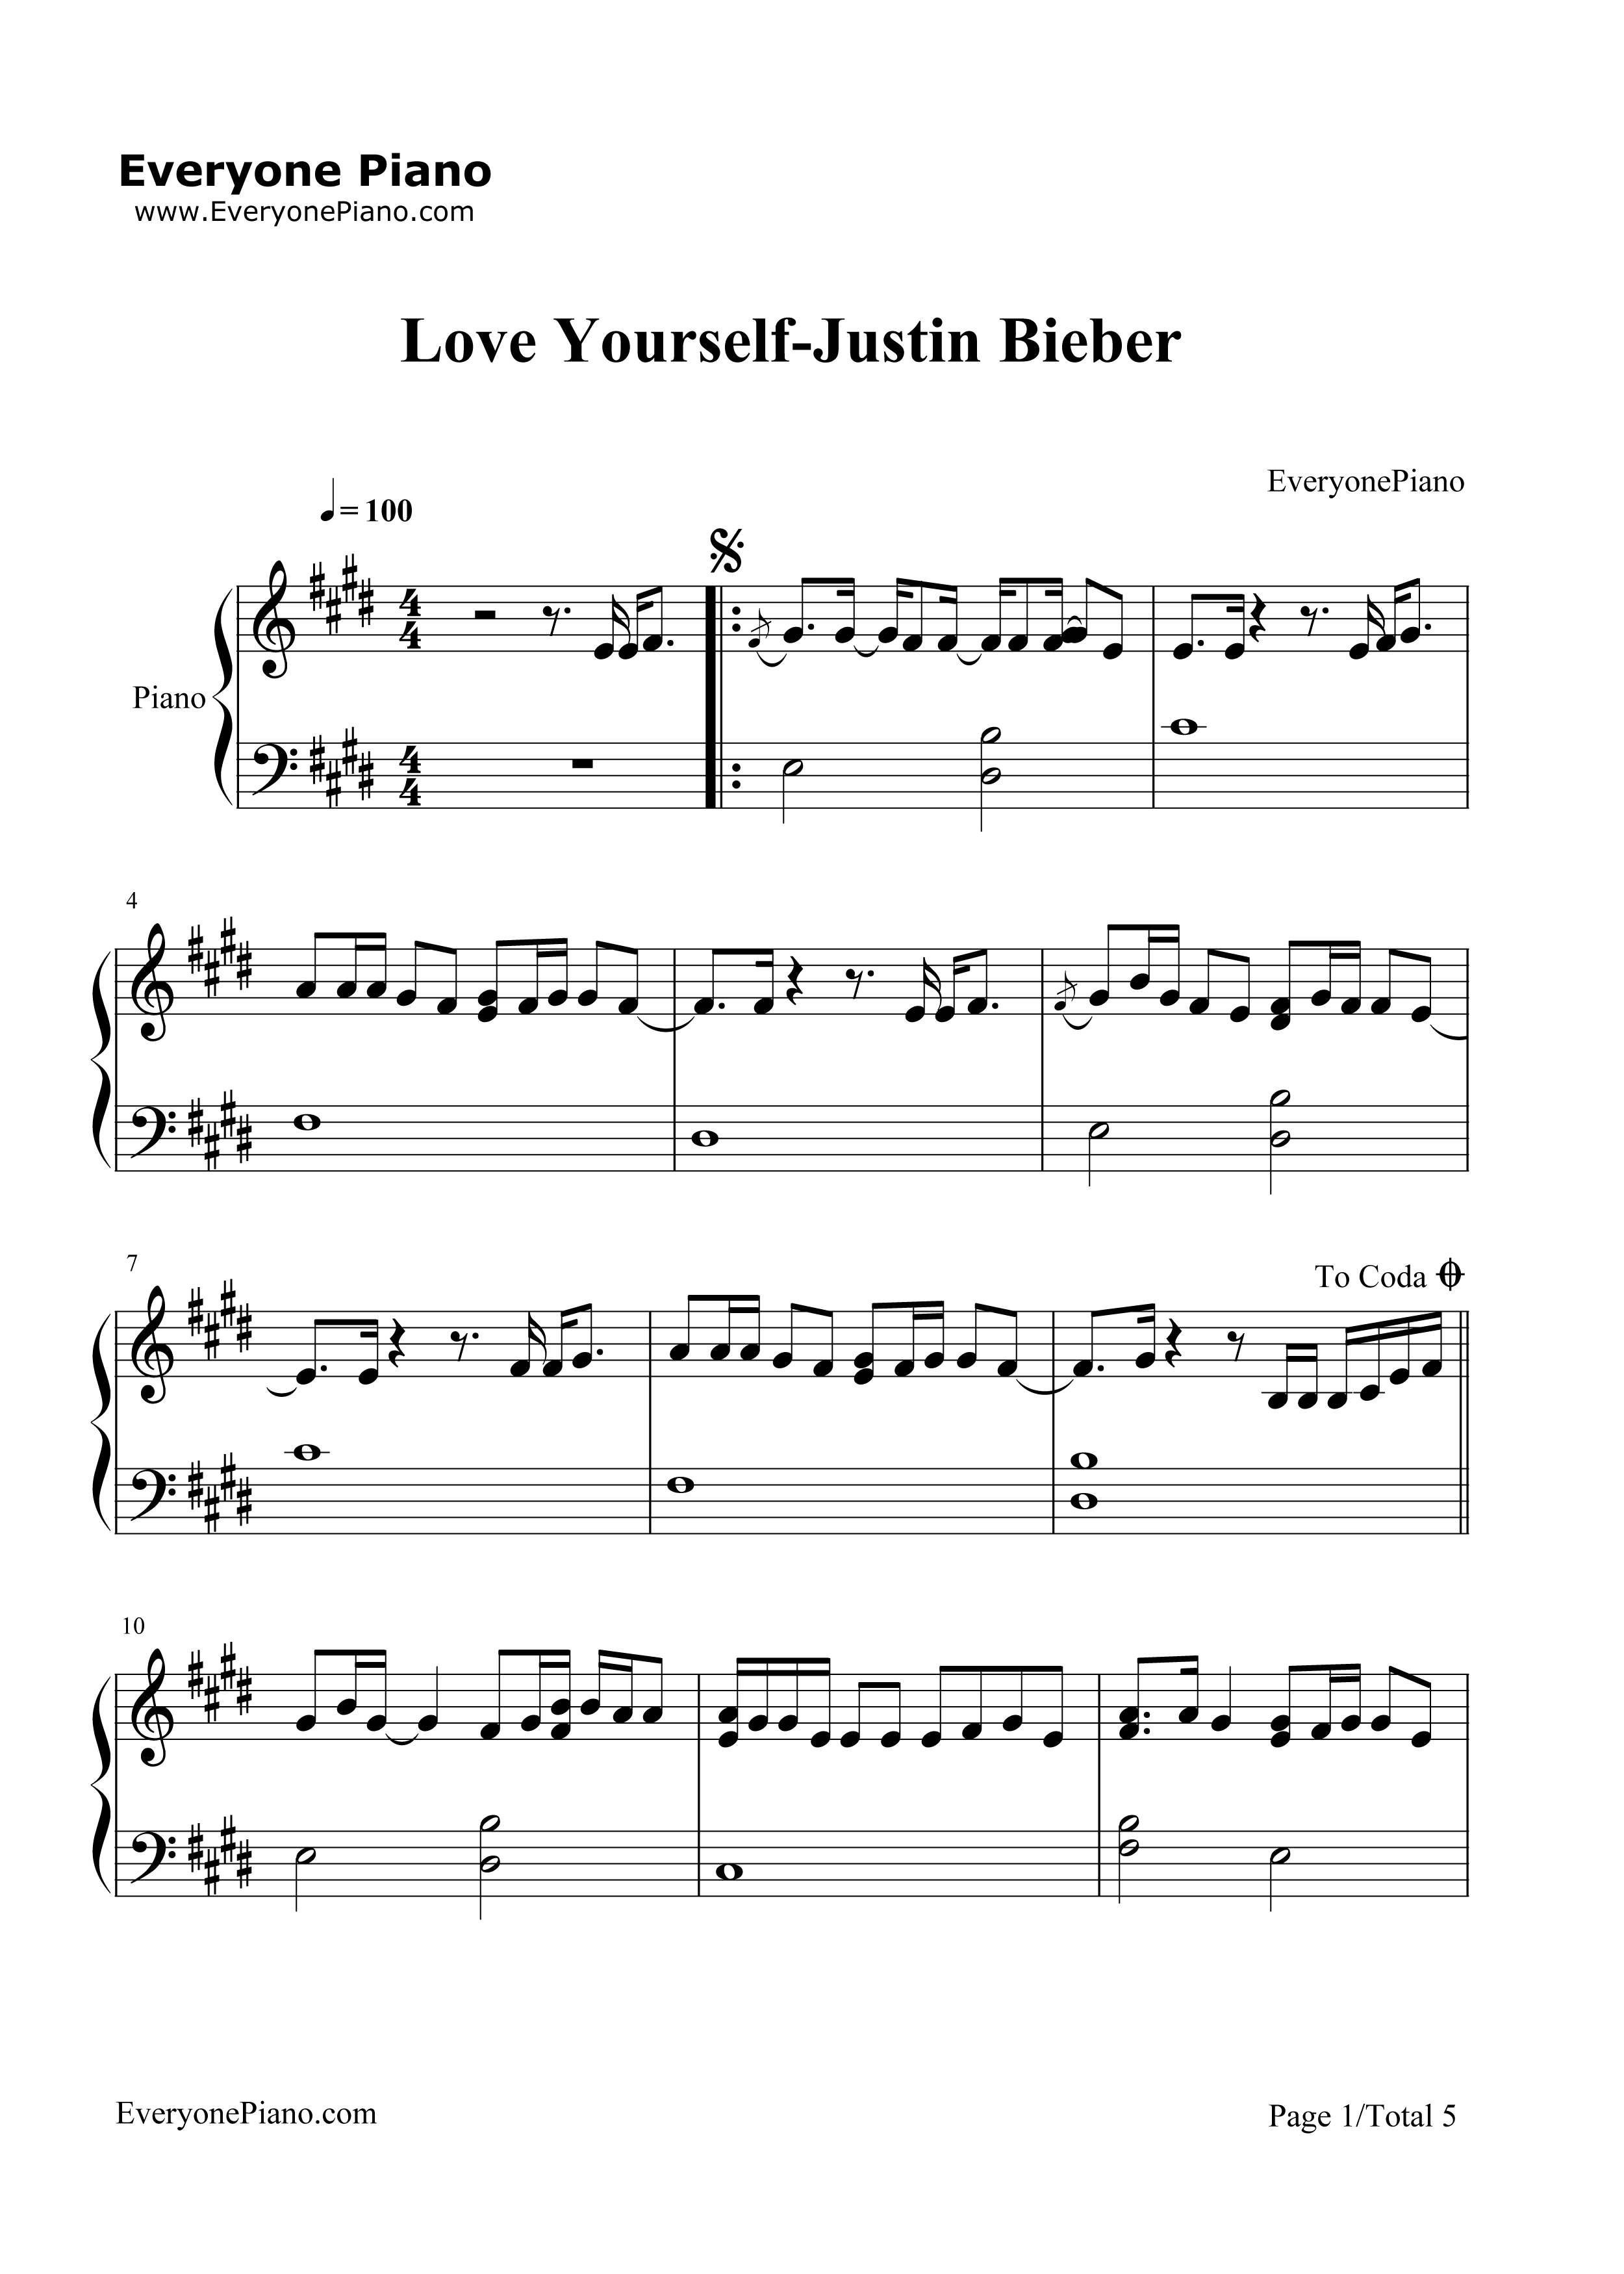 Love Yourself-Justin Bieber Stave Preview 1-Free Piano Sheet Music u0026 Piano Chords